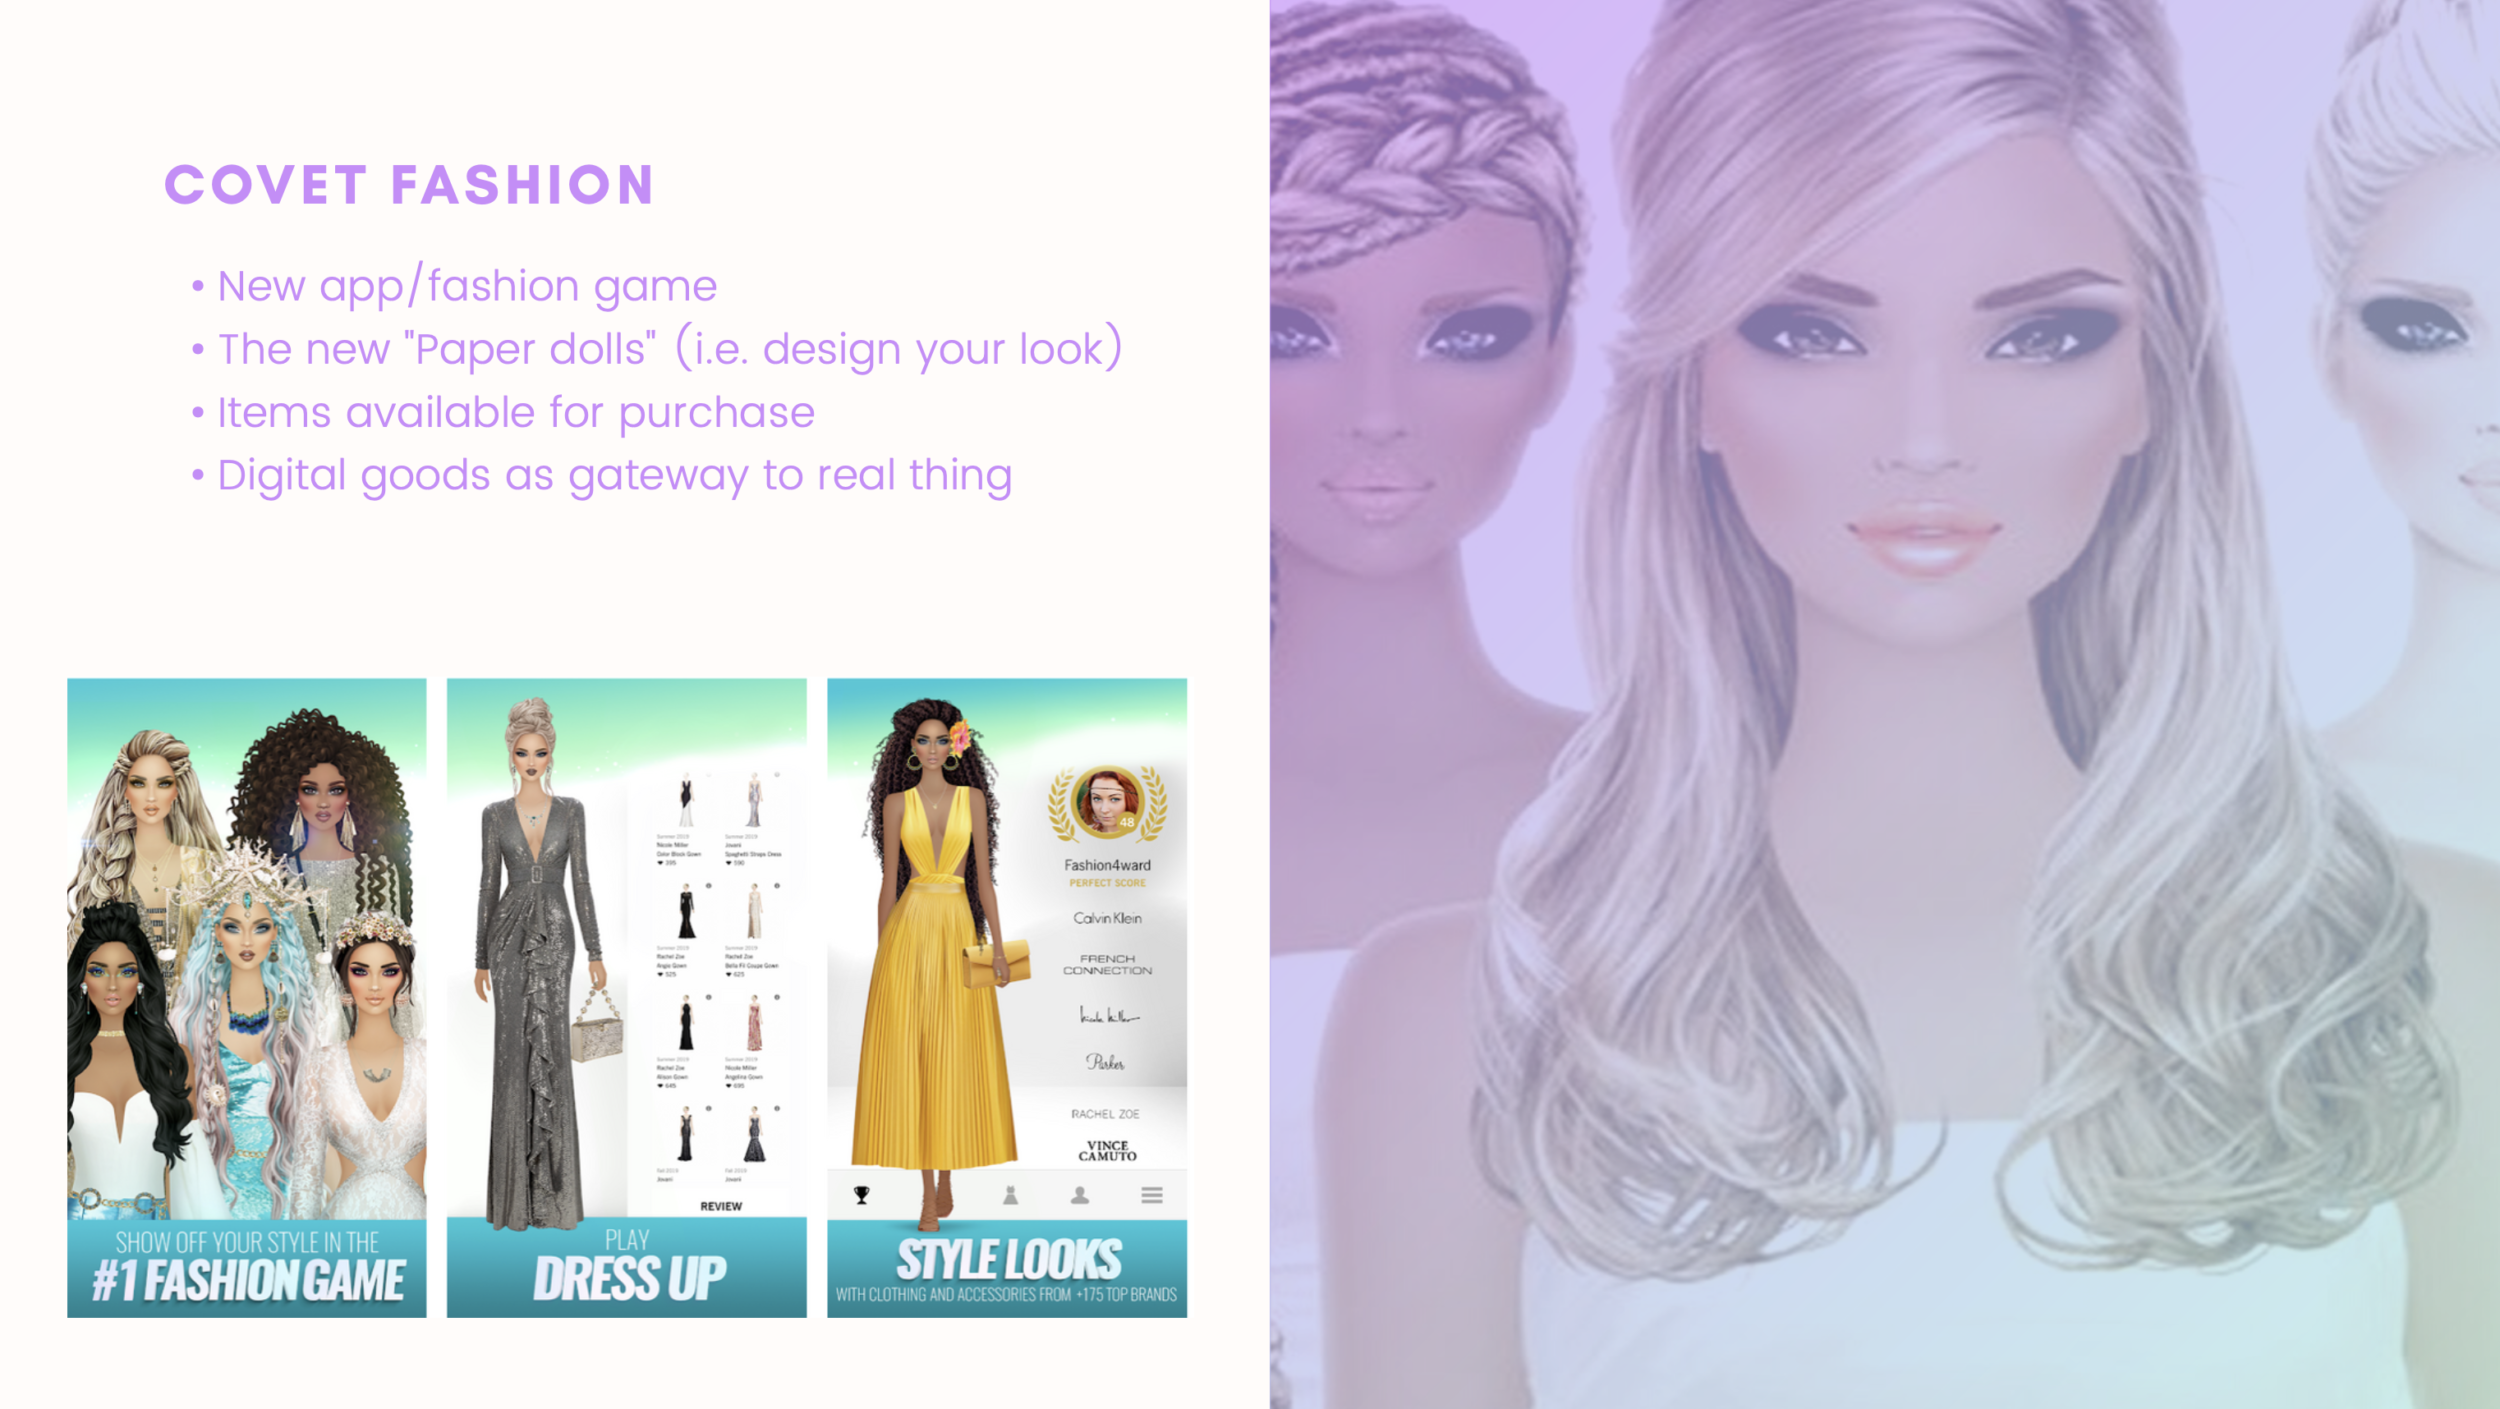 A screenshot of the styling app CovetFashion